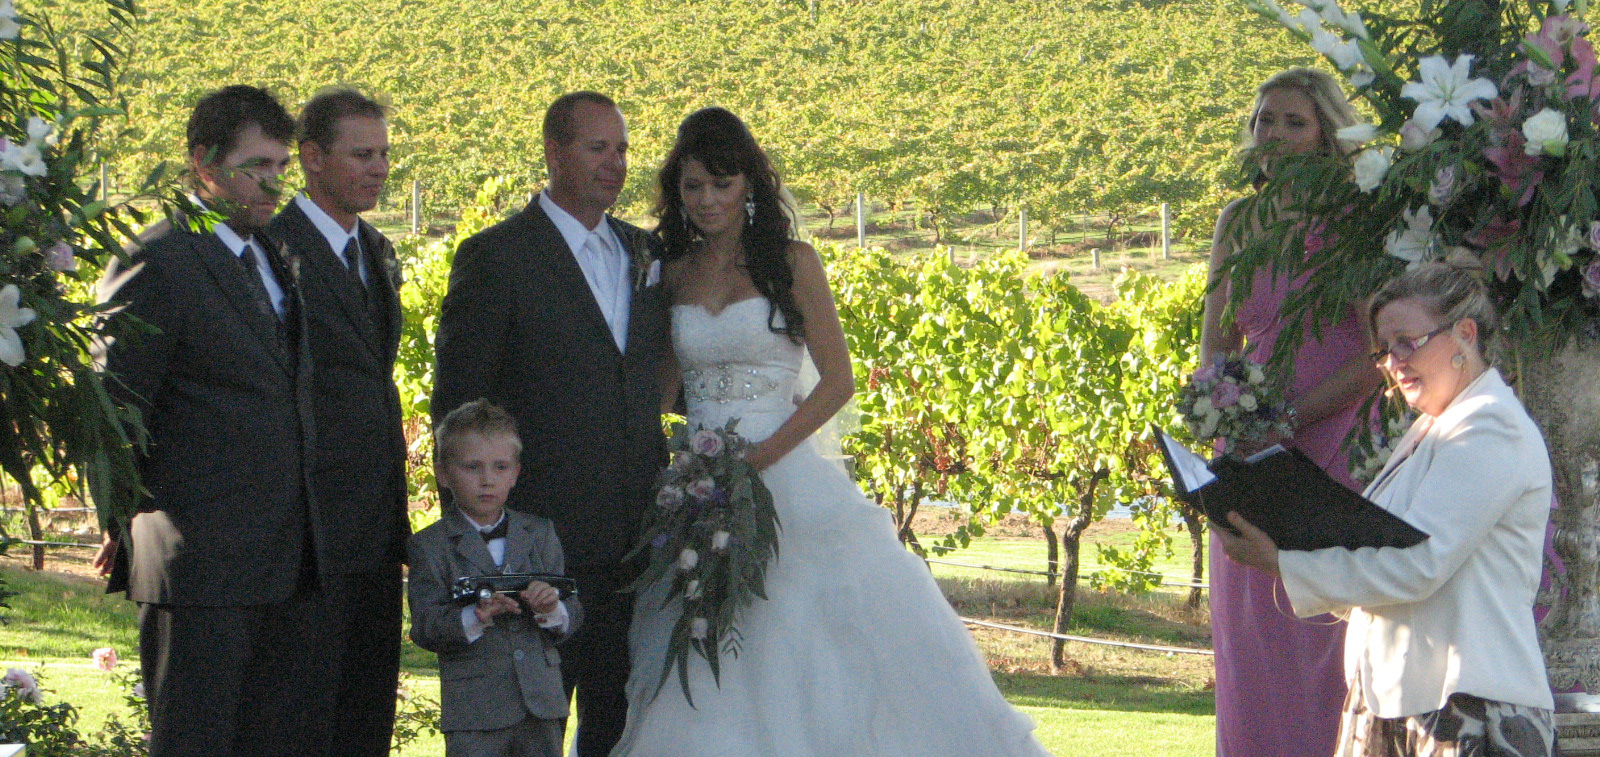 Marriage Celebrant - Heart and Soul Celebrations